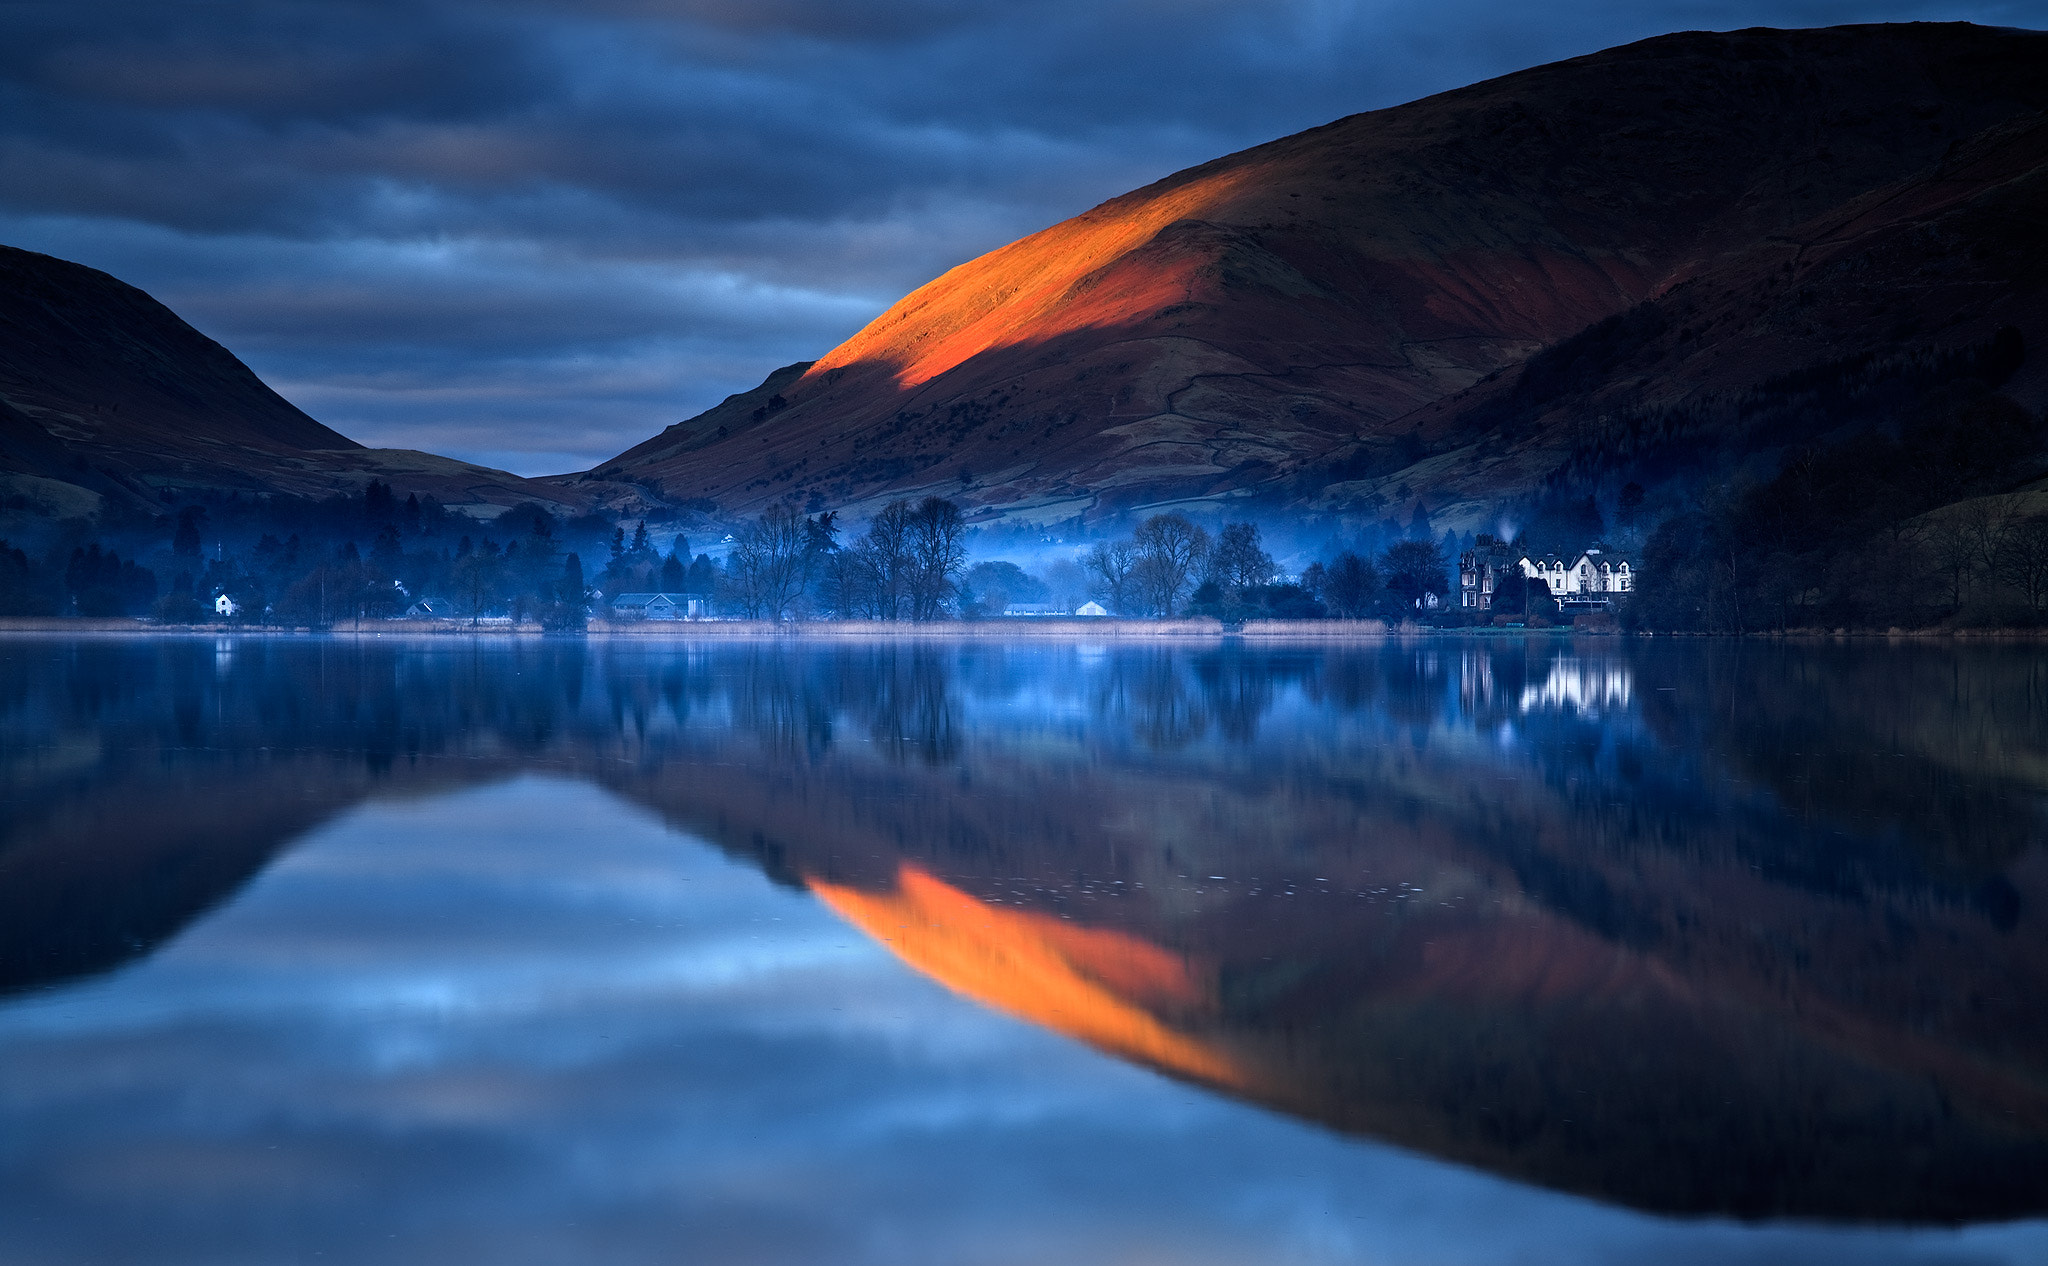 Photograph Grasmere by Melanie M on 500px